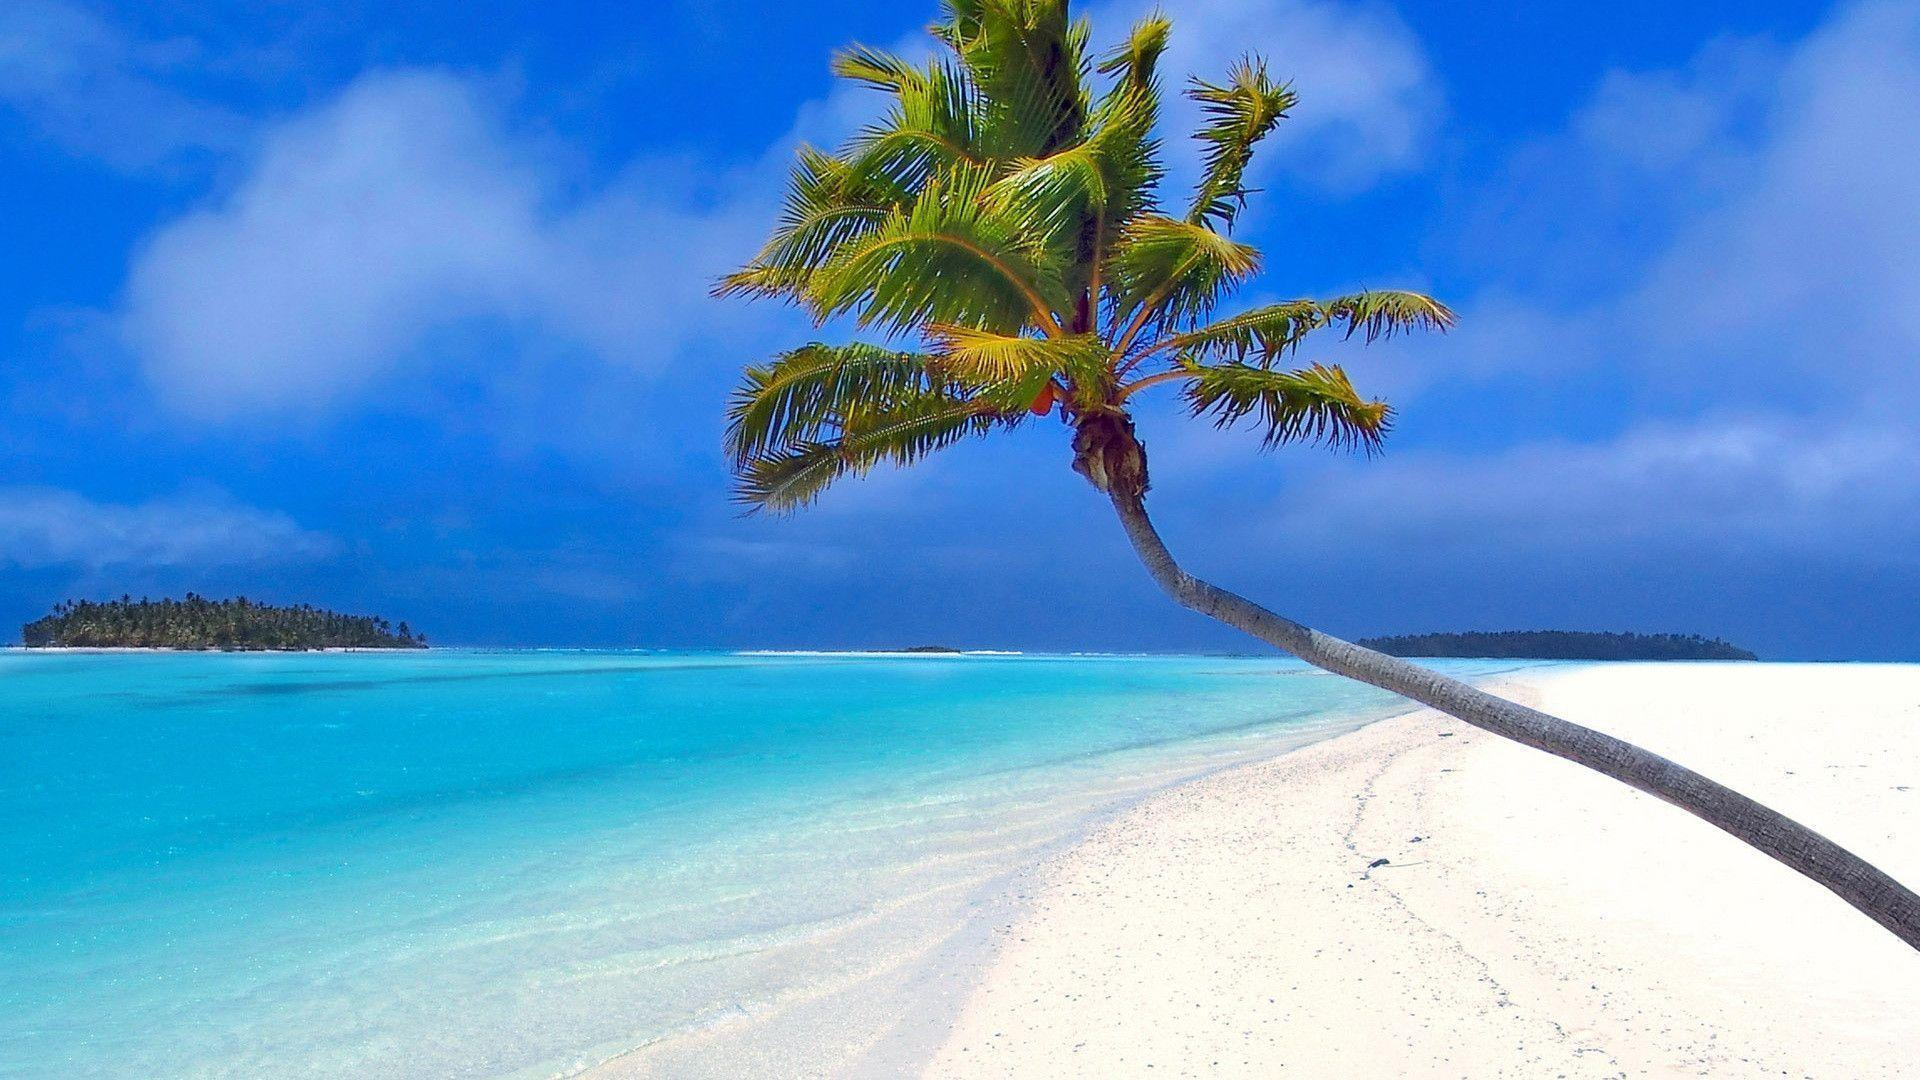 Beach by a coconut tree Wallpapers